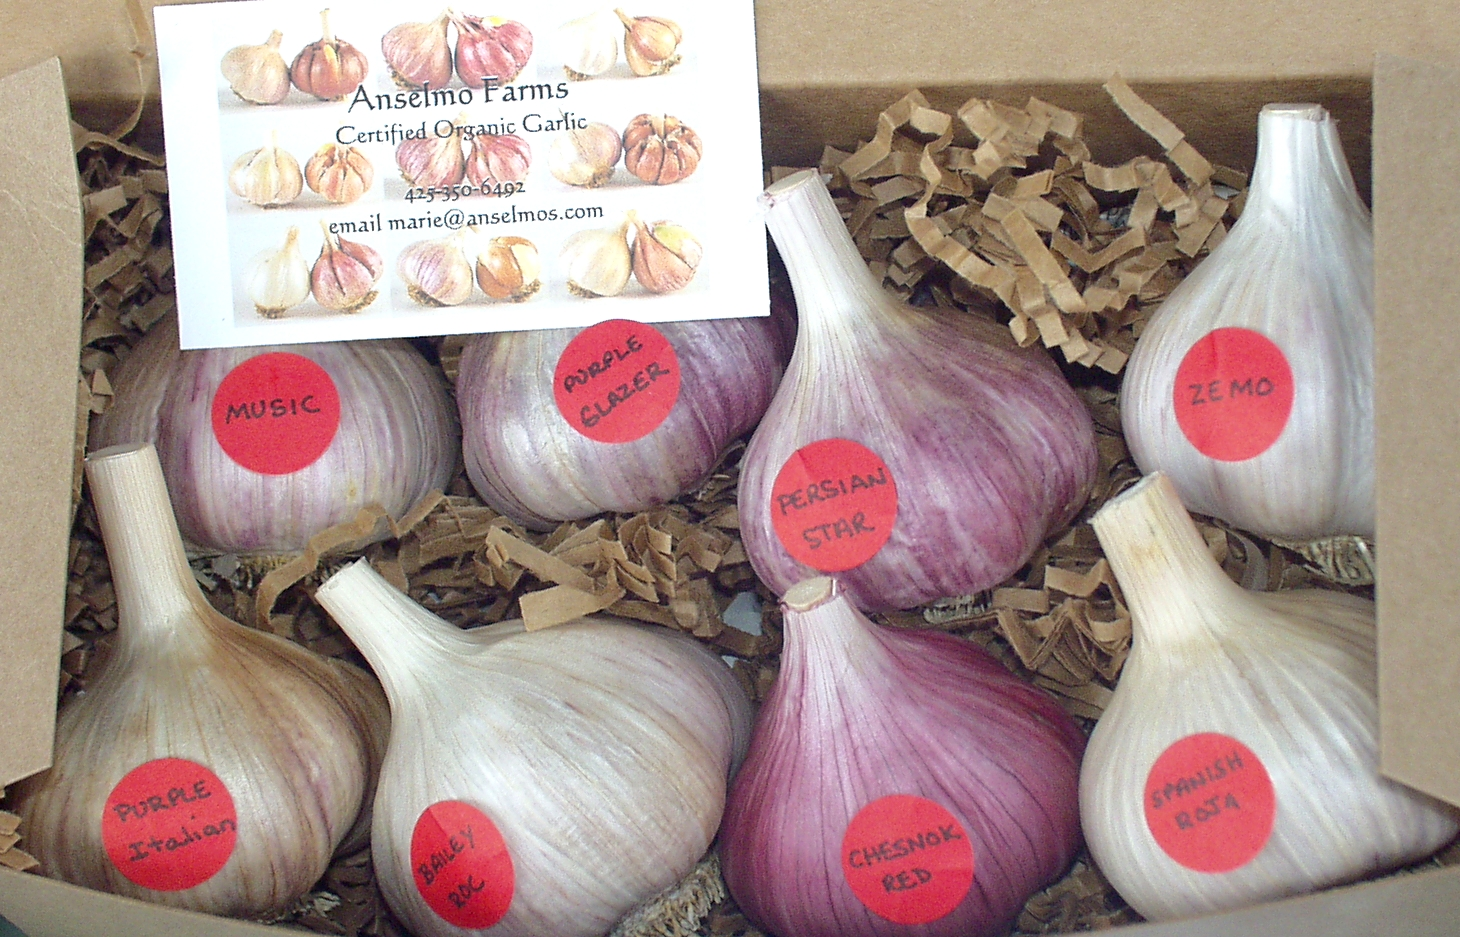 Give the gift of garlic, from Anselmo Farms. Photo copyright 2009 by Zachary D. Lyons.